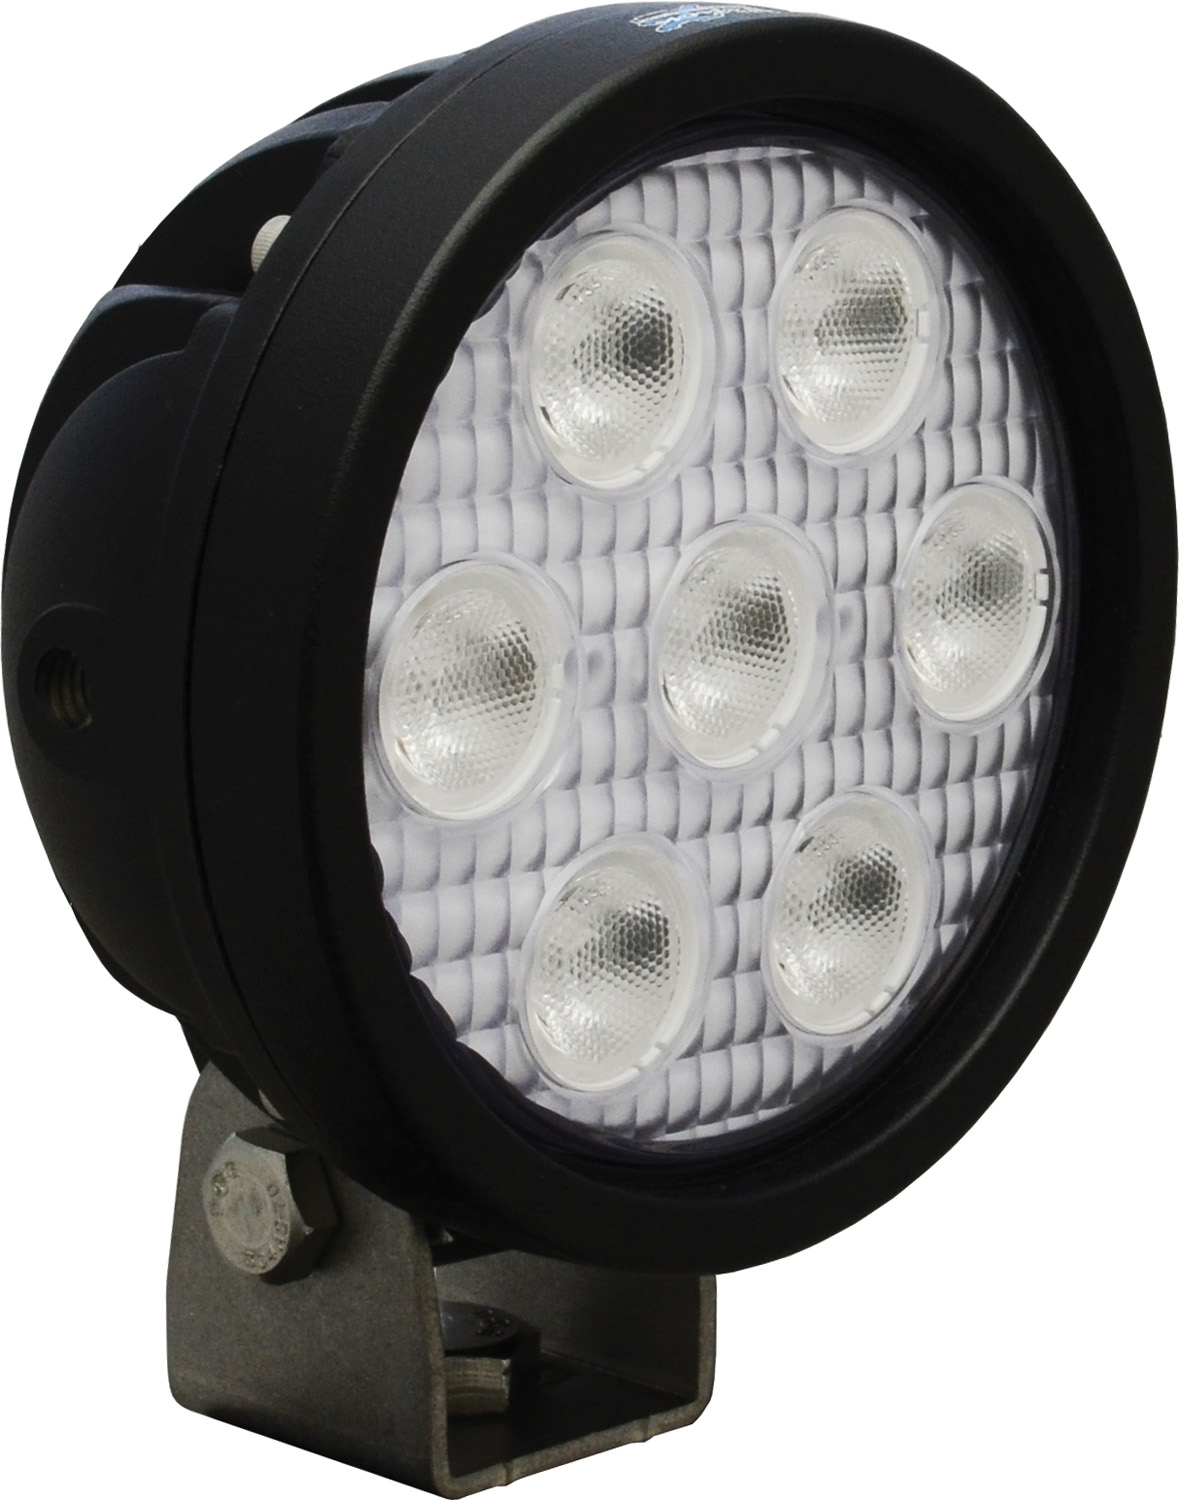 "4"" ROUND UTILITY MARKET BLACK 7 3W BLUE LED'S 40ç WIDE"